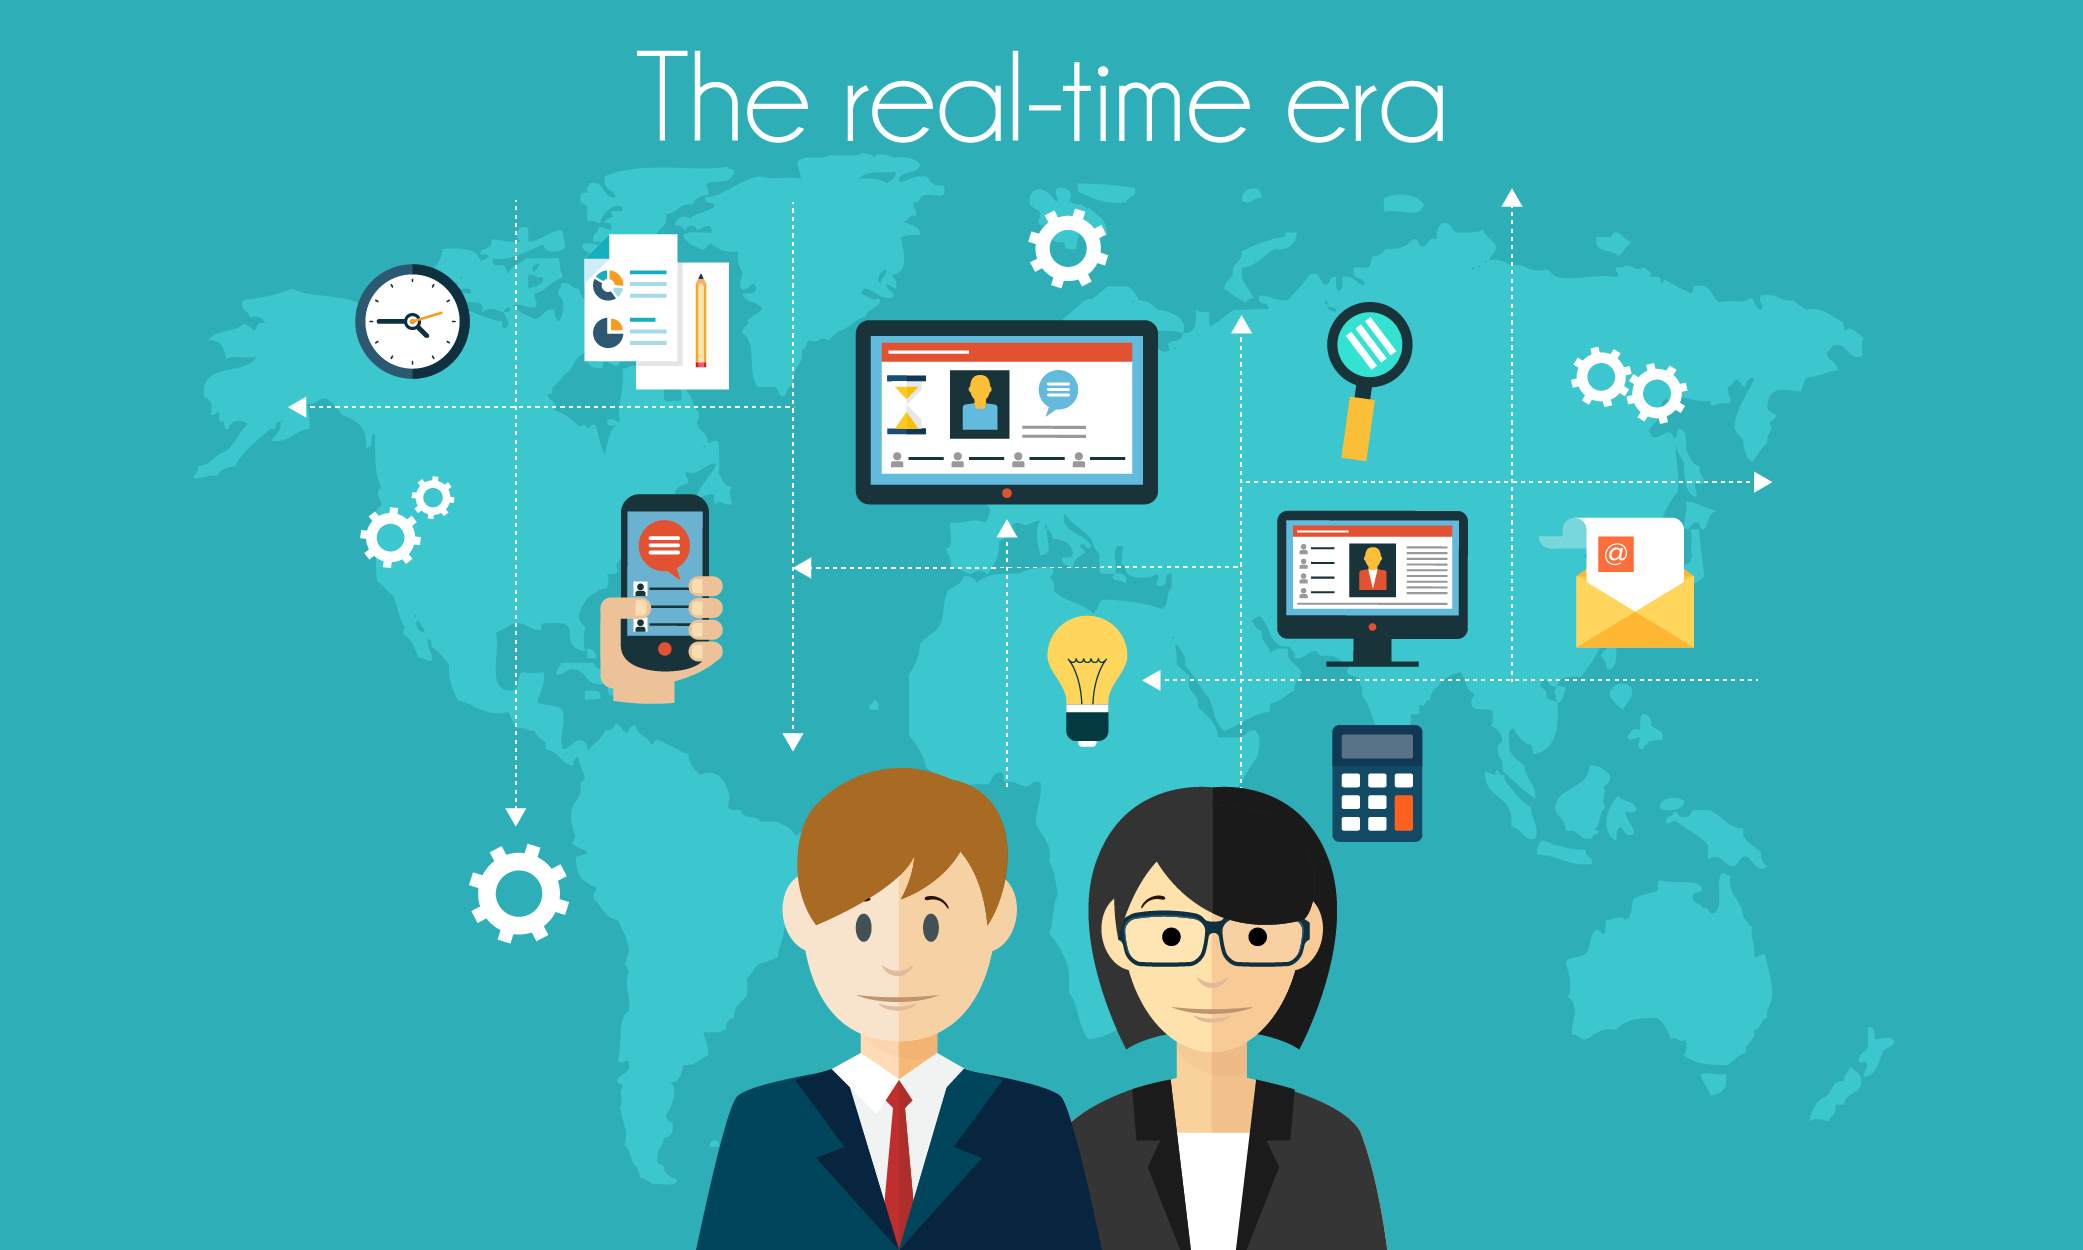 The real-time era